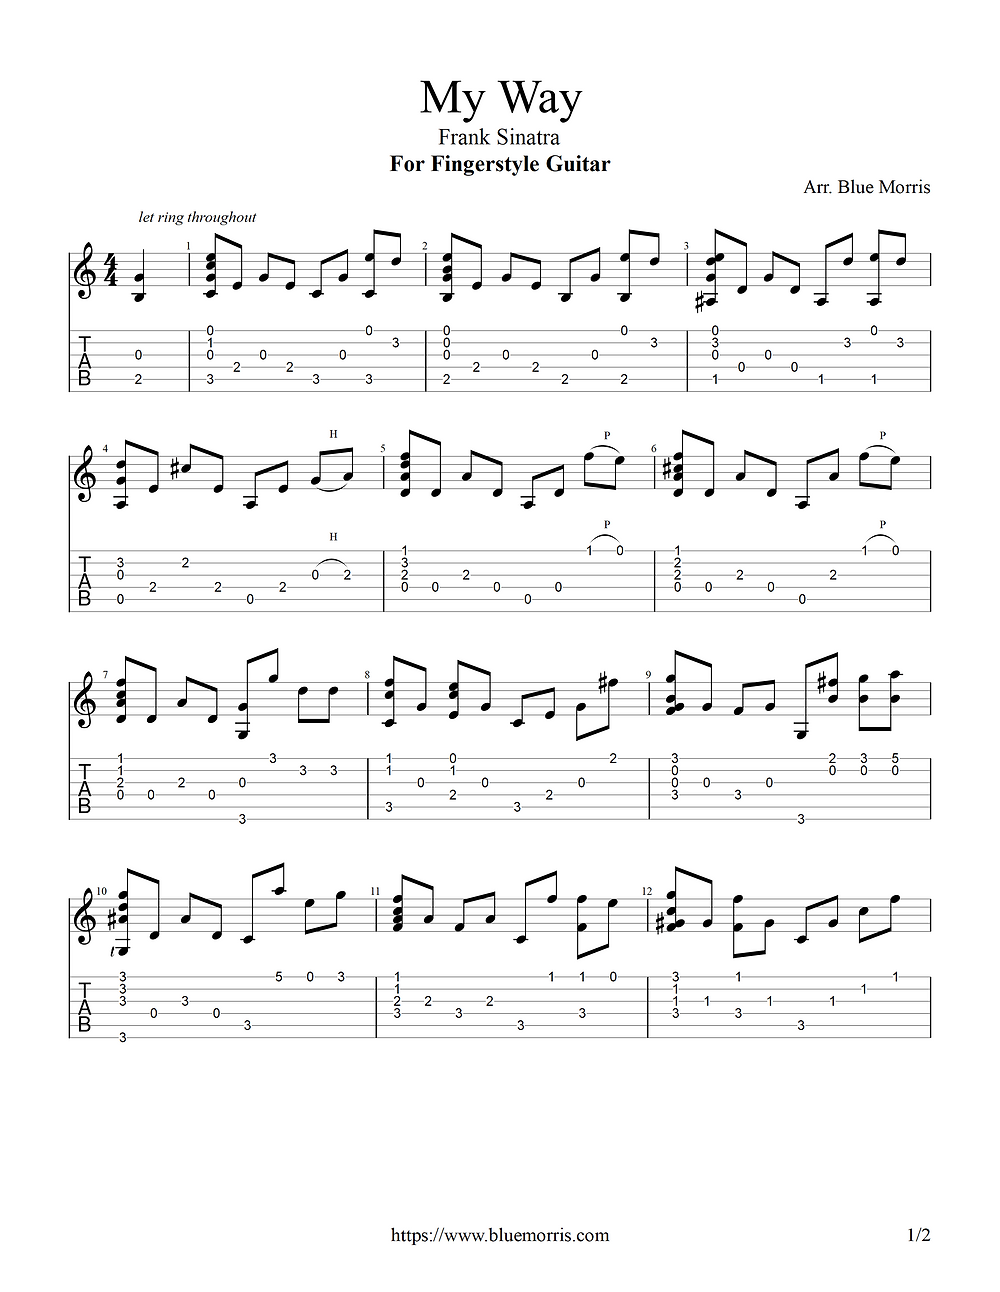 My Way Frank Sinatra Fingerstyle Guitar page 1